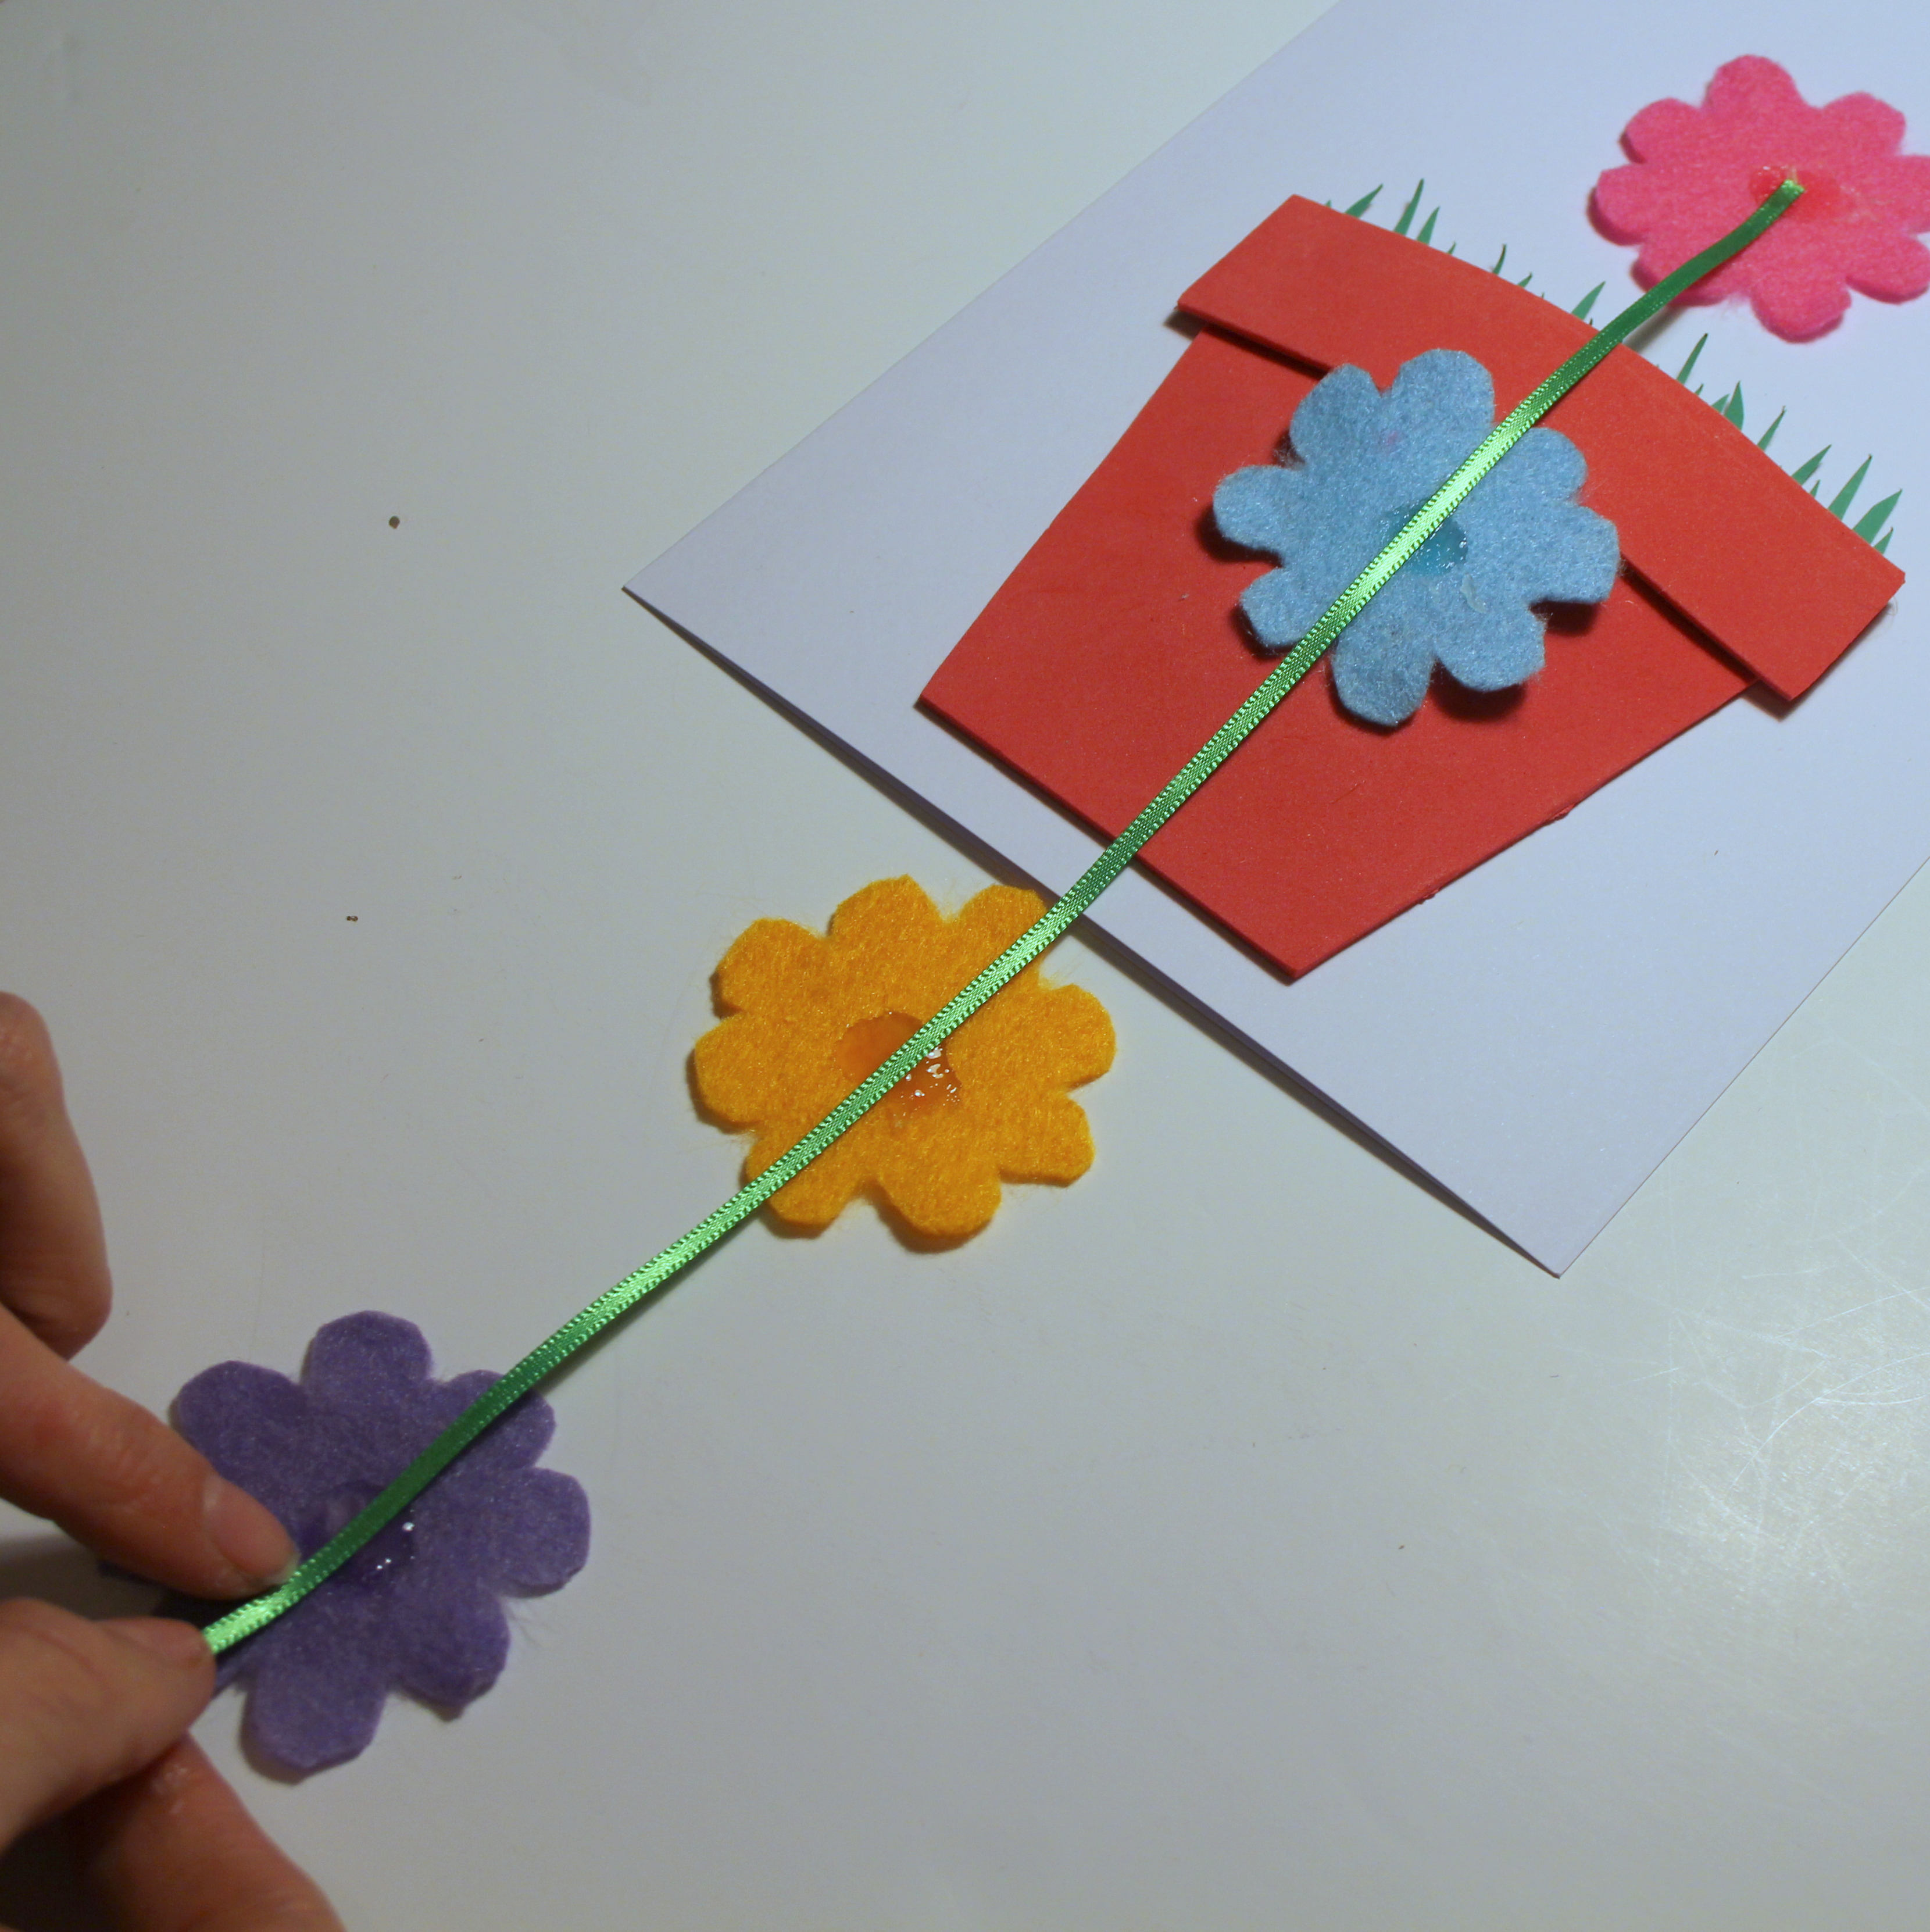 Mothers Day Card Making Ideas Part - 41: 4 Easy Motheru0027s Day Card Ideas #Mothersday #CardMaking #Papercraft  #KidsCraft #FlowerPower